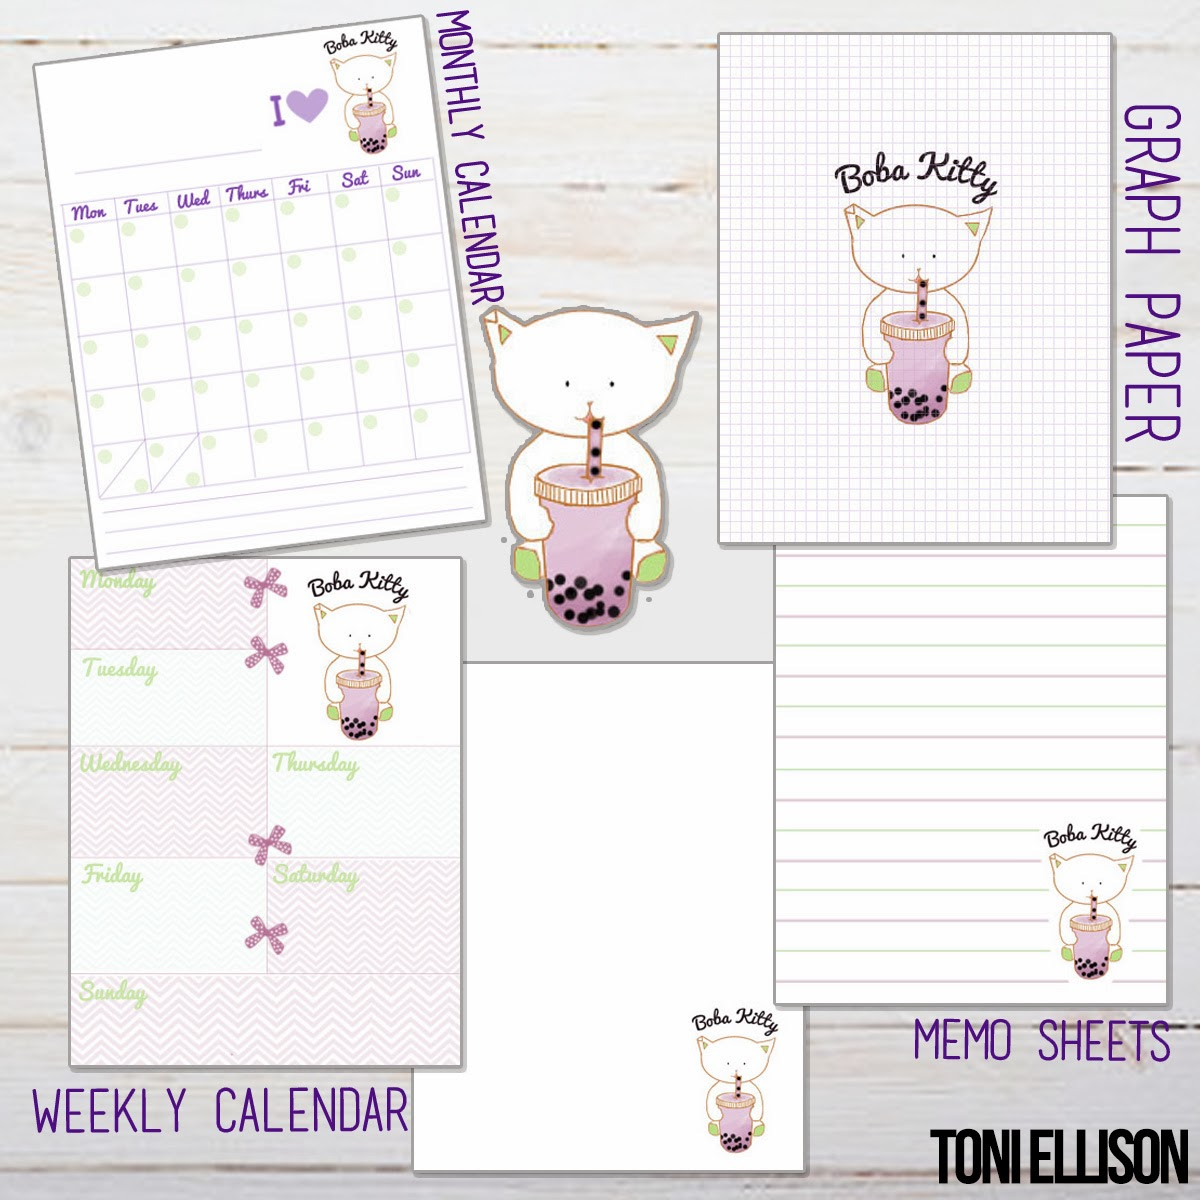 Agenda   Planner   Stationery DIY   How To Make Your Own Agenda   Toni  Ellison  Make An Agenda